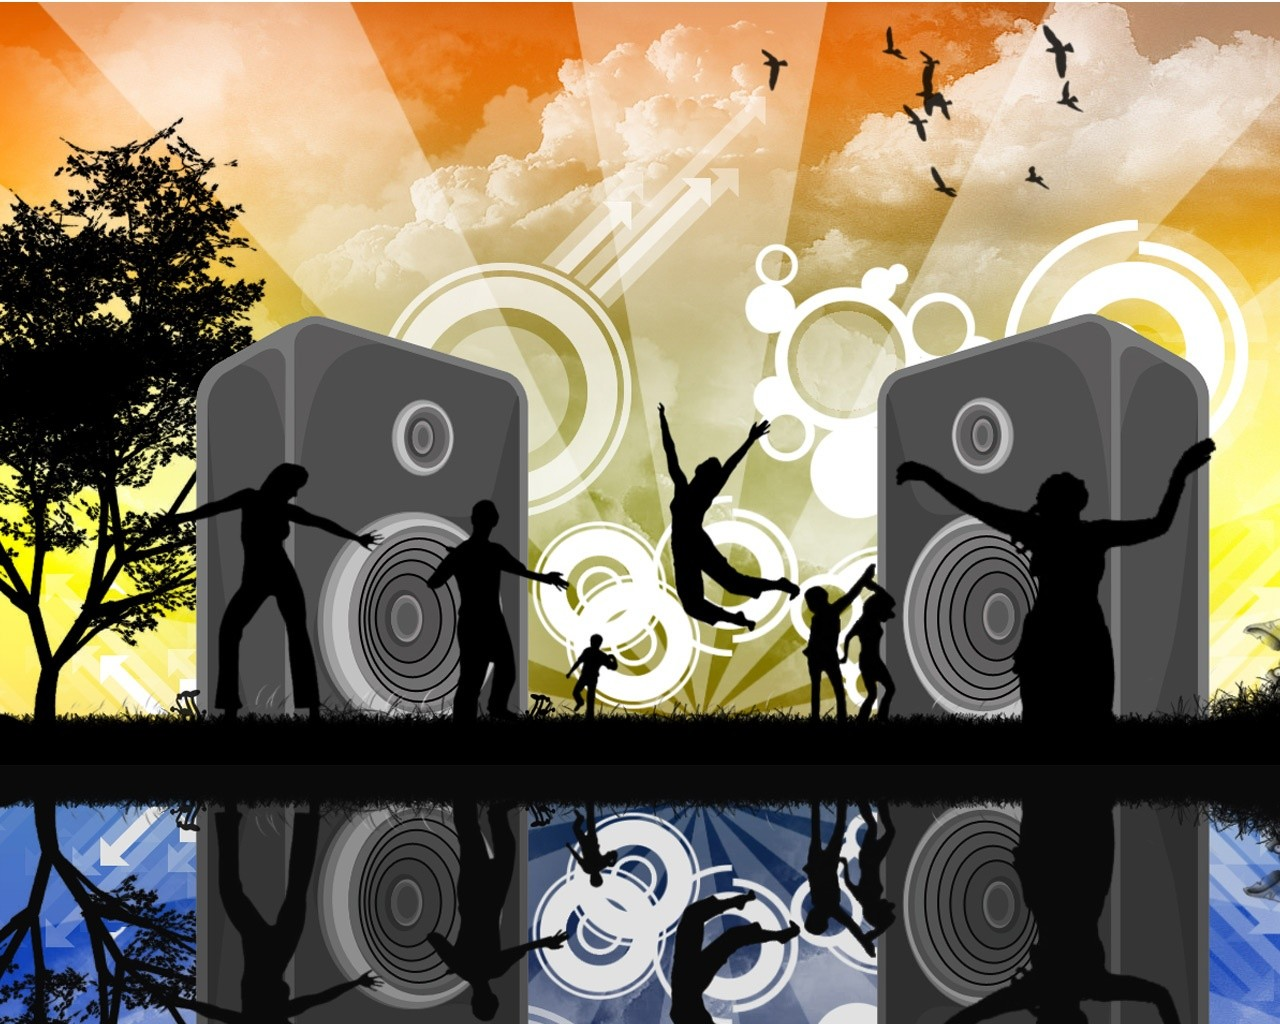 Rave Party – Abstract Wallpaper 1280x1024 px